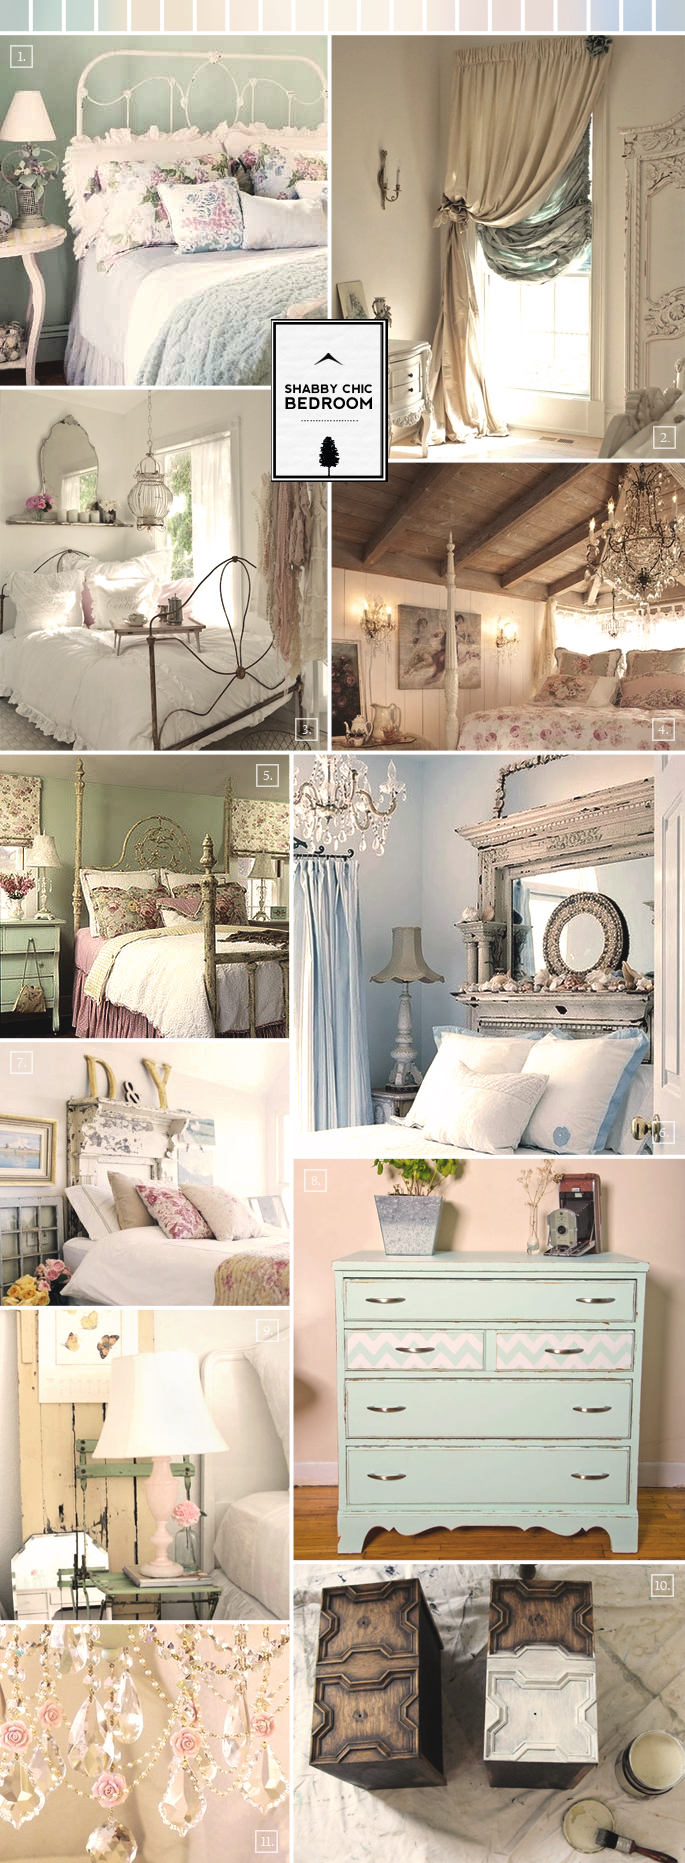 Shabby chic bedroom ideas and decor inspiration home tree atlas Home design ideas shabby chic